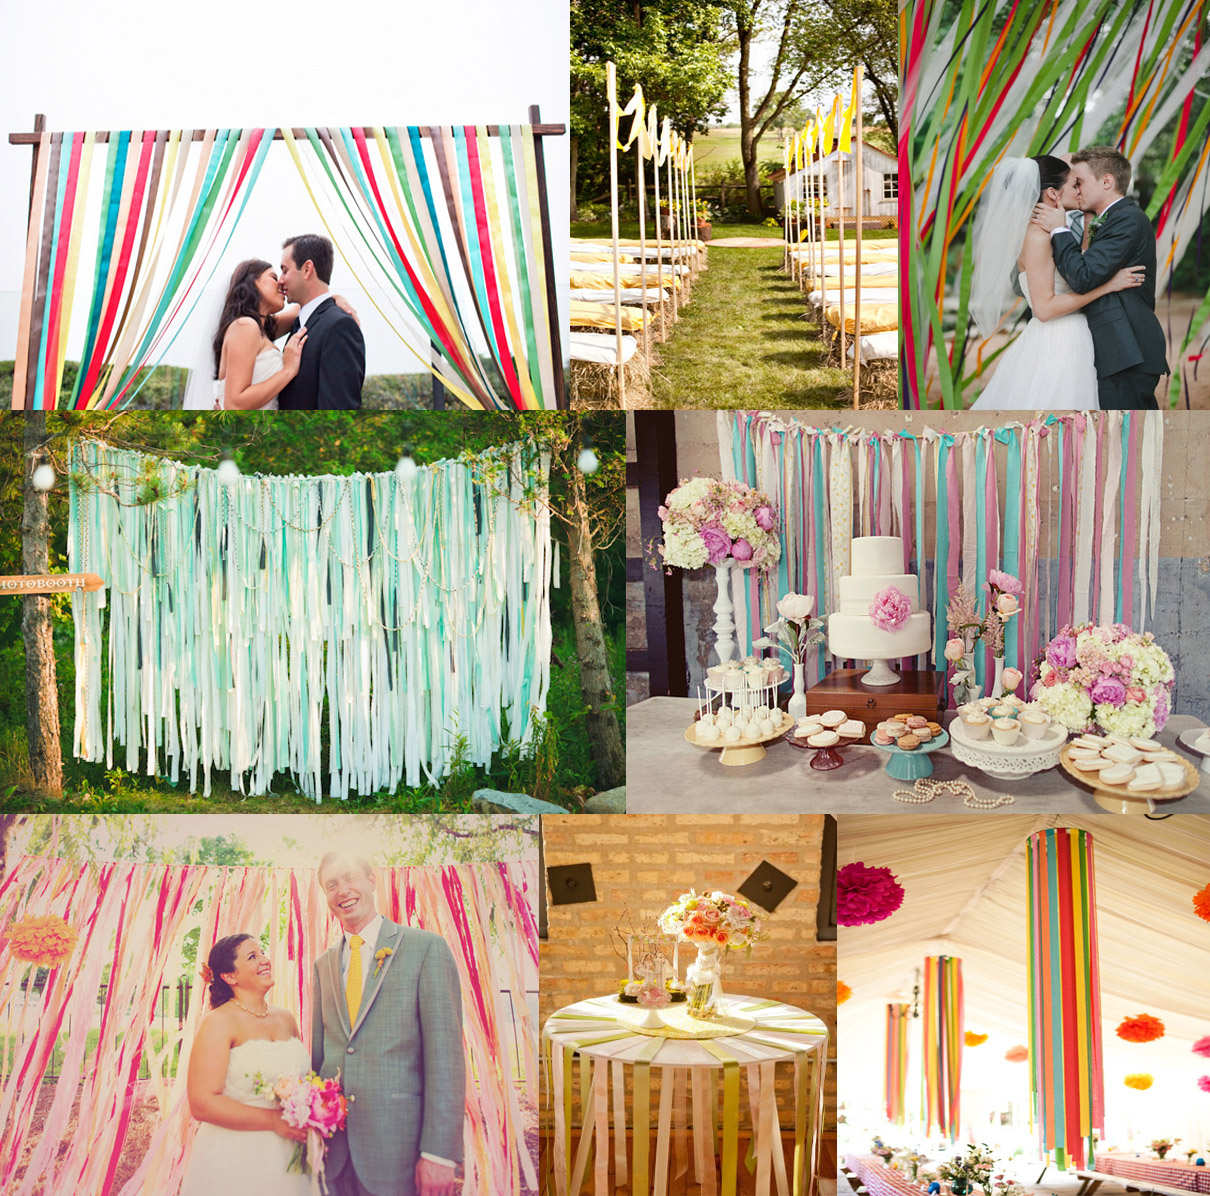 Top Trends For The Upcoming 2013 Wedding Season